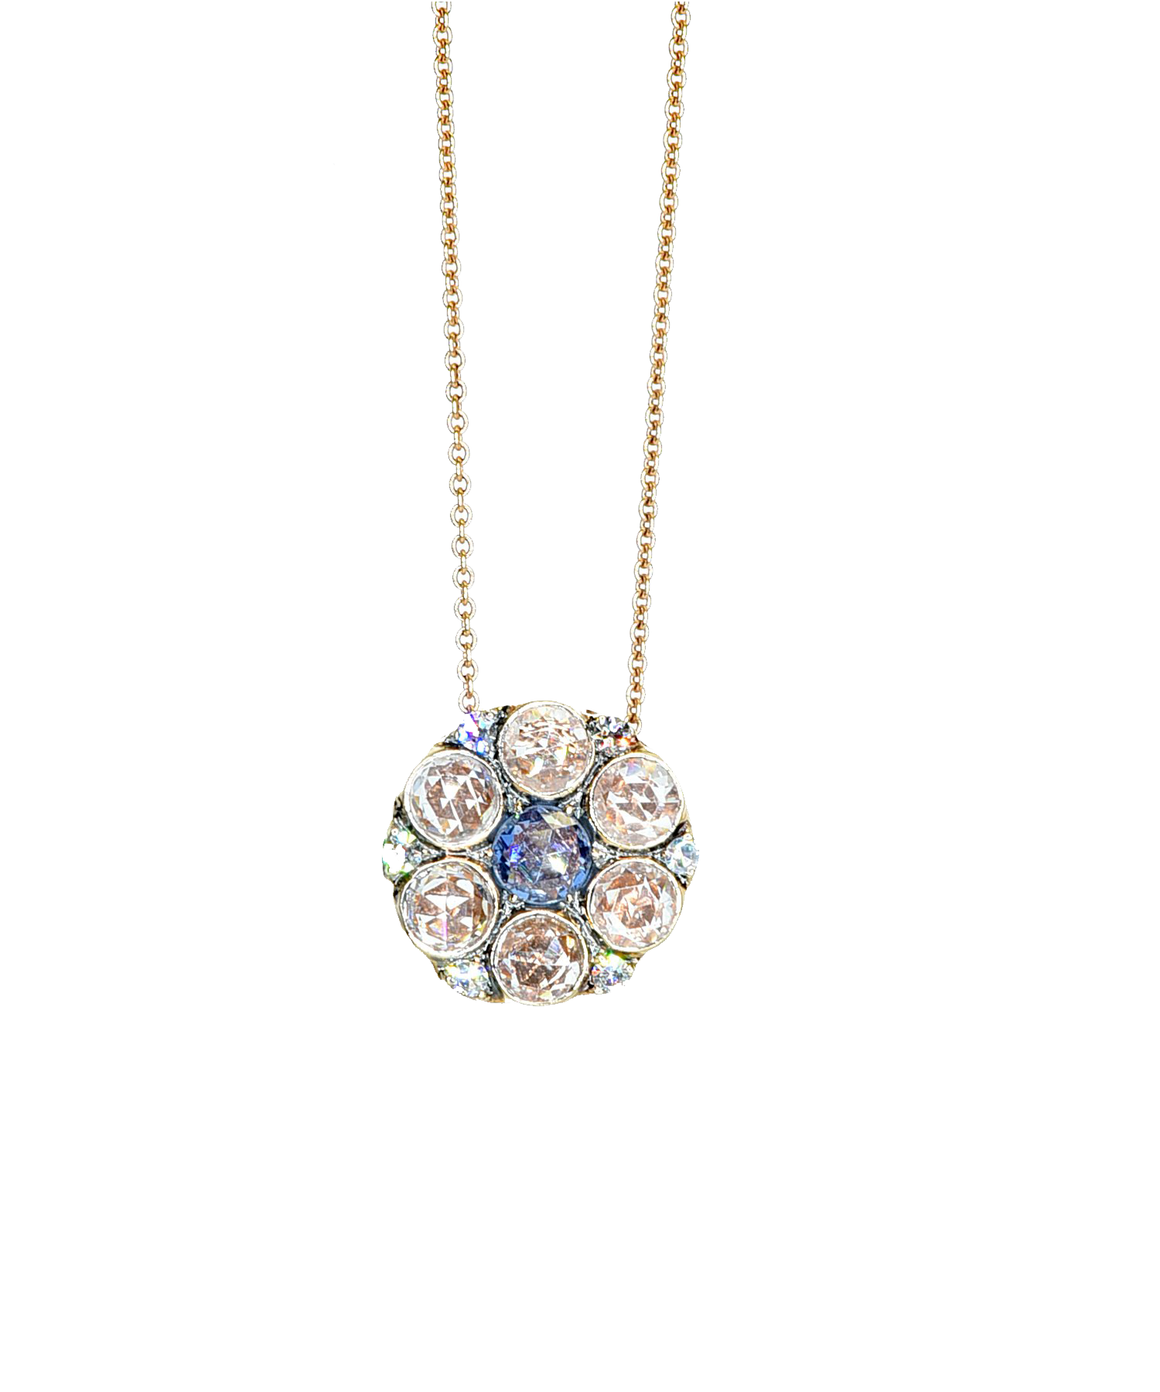 Rose Cut Diamond and Sapphire Flower Pendant - Lesley Ann Jewels